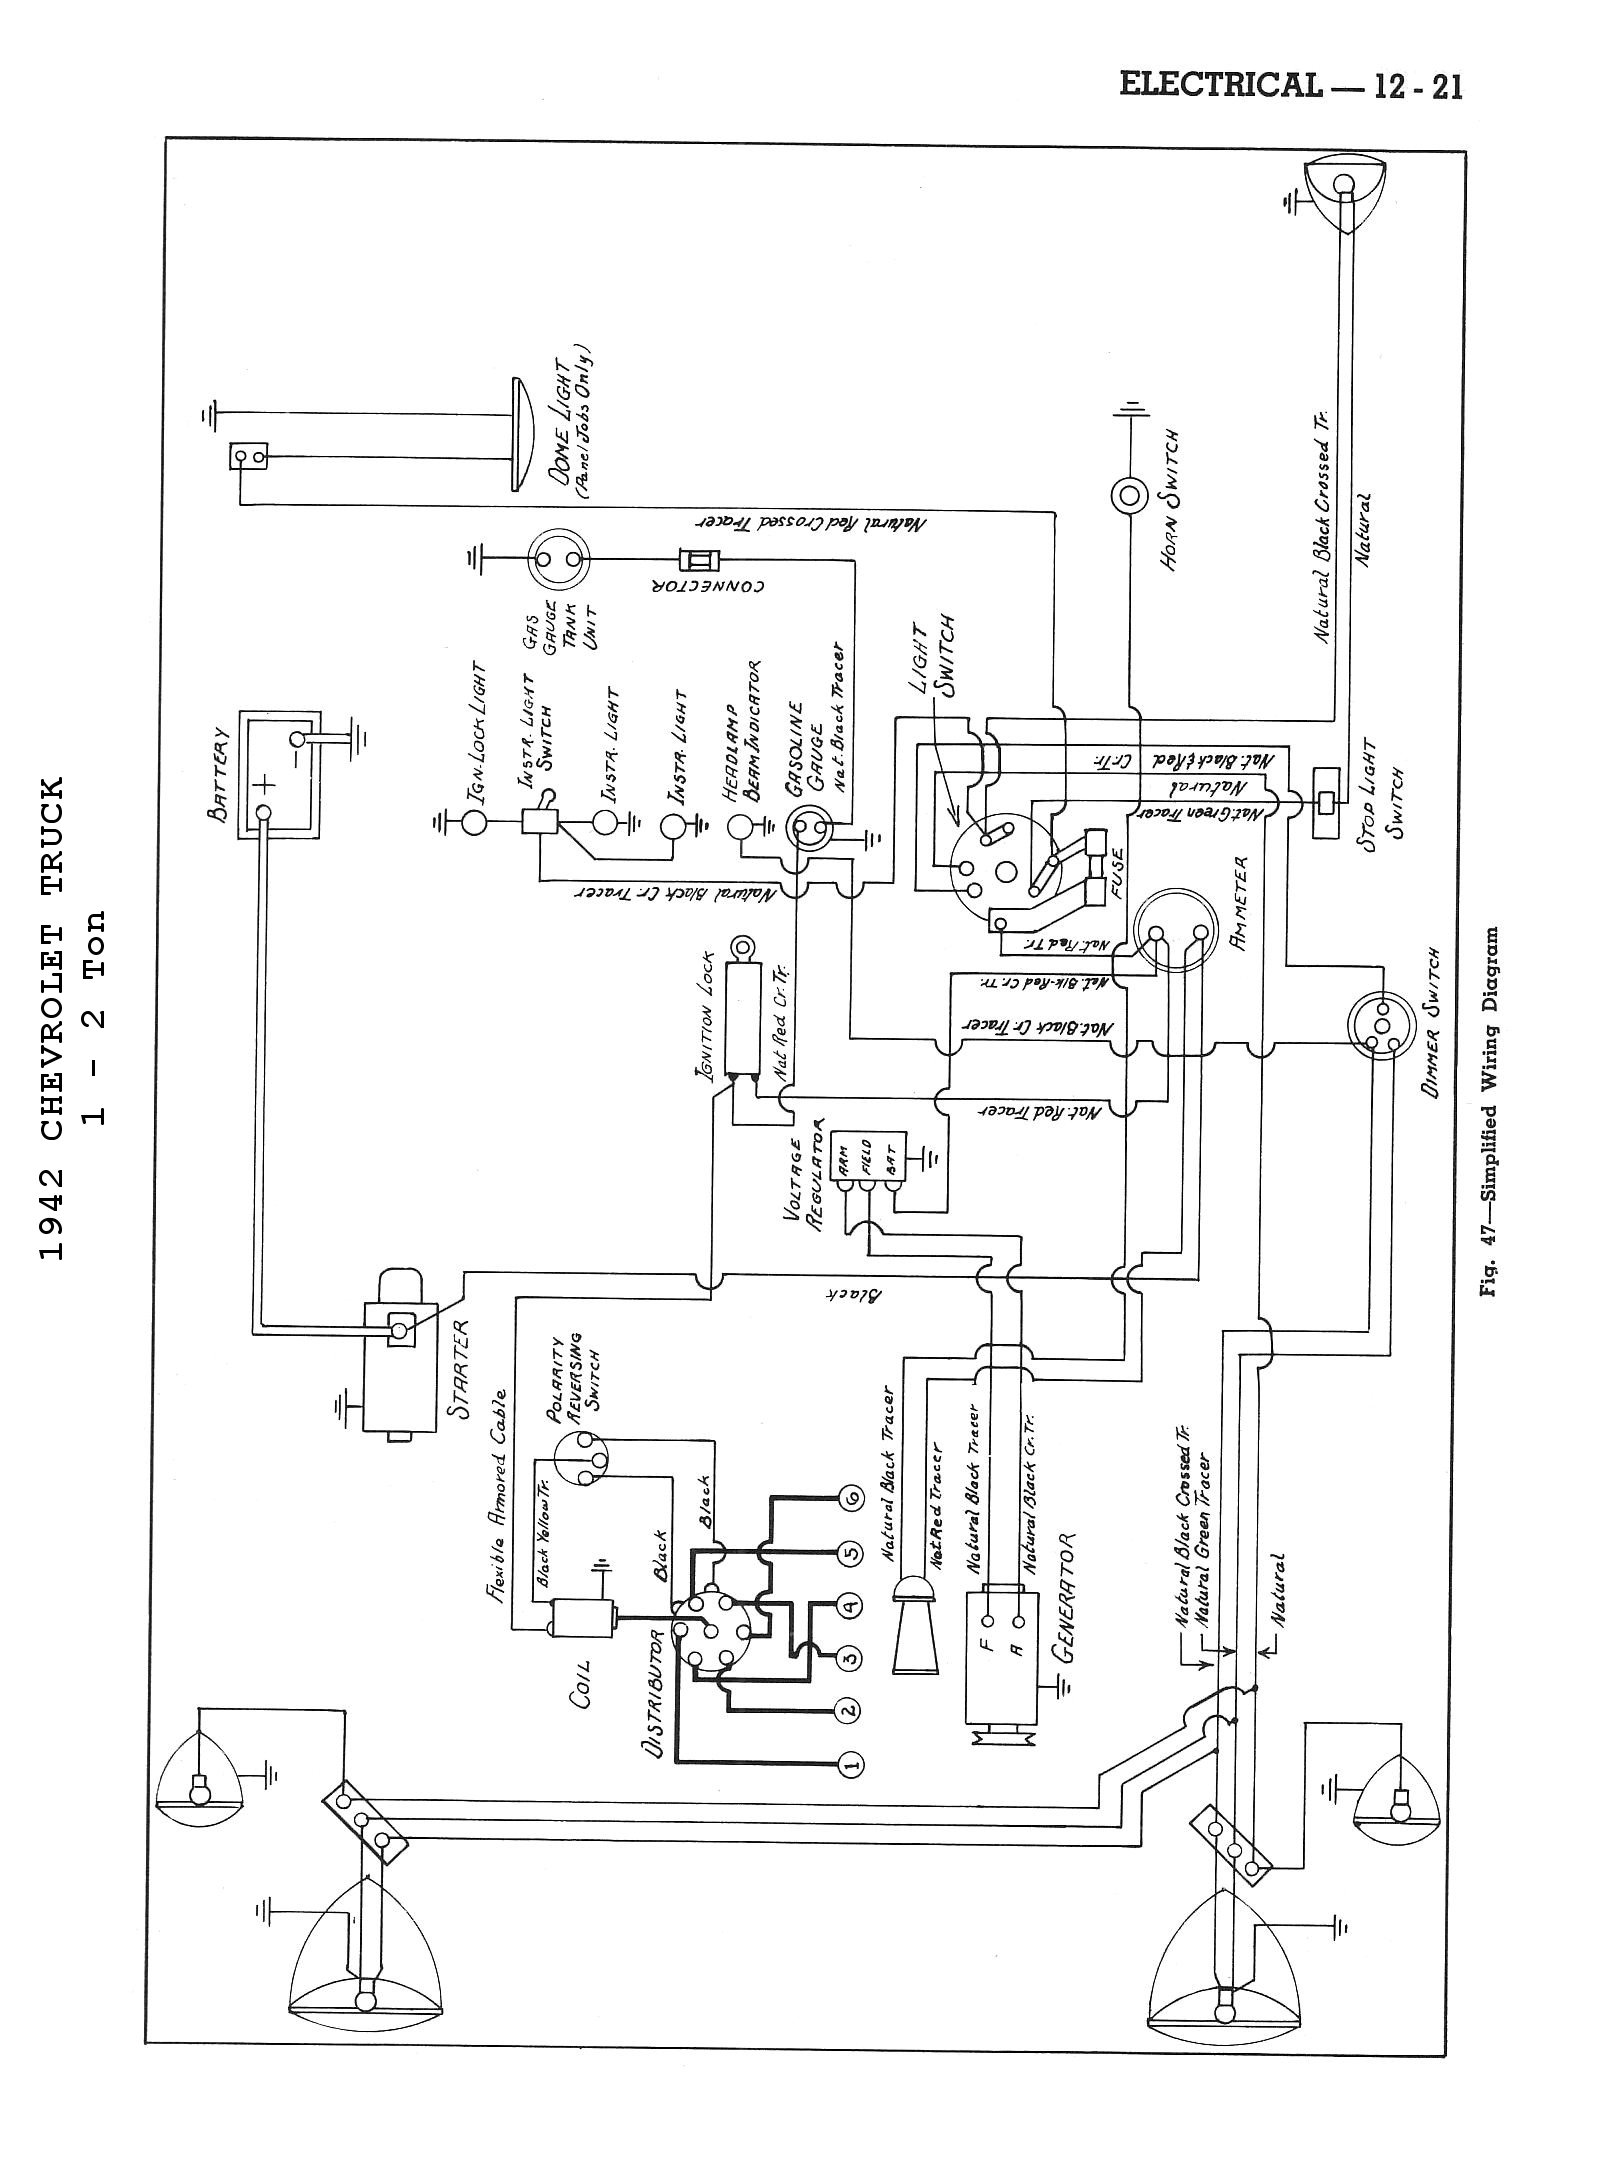 wiring harness diagram chevy truck the wiring diagram chevy wiring harness diagram nilza wiring diagram